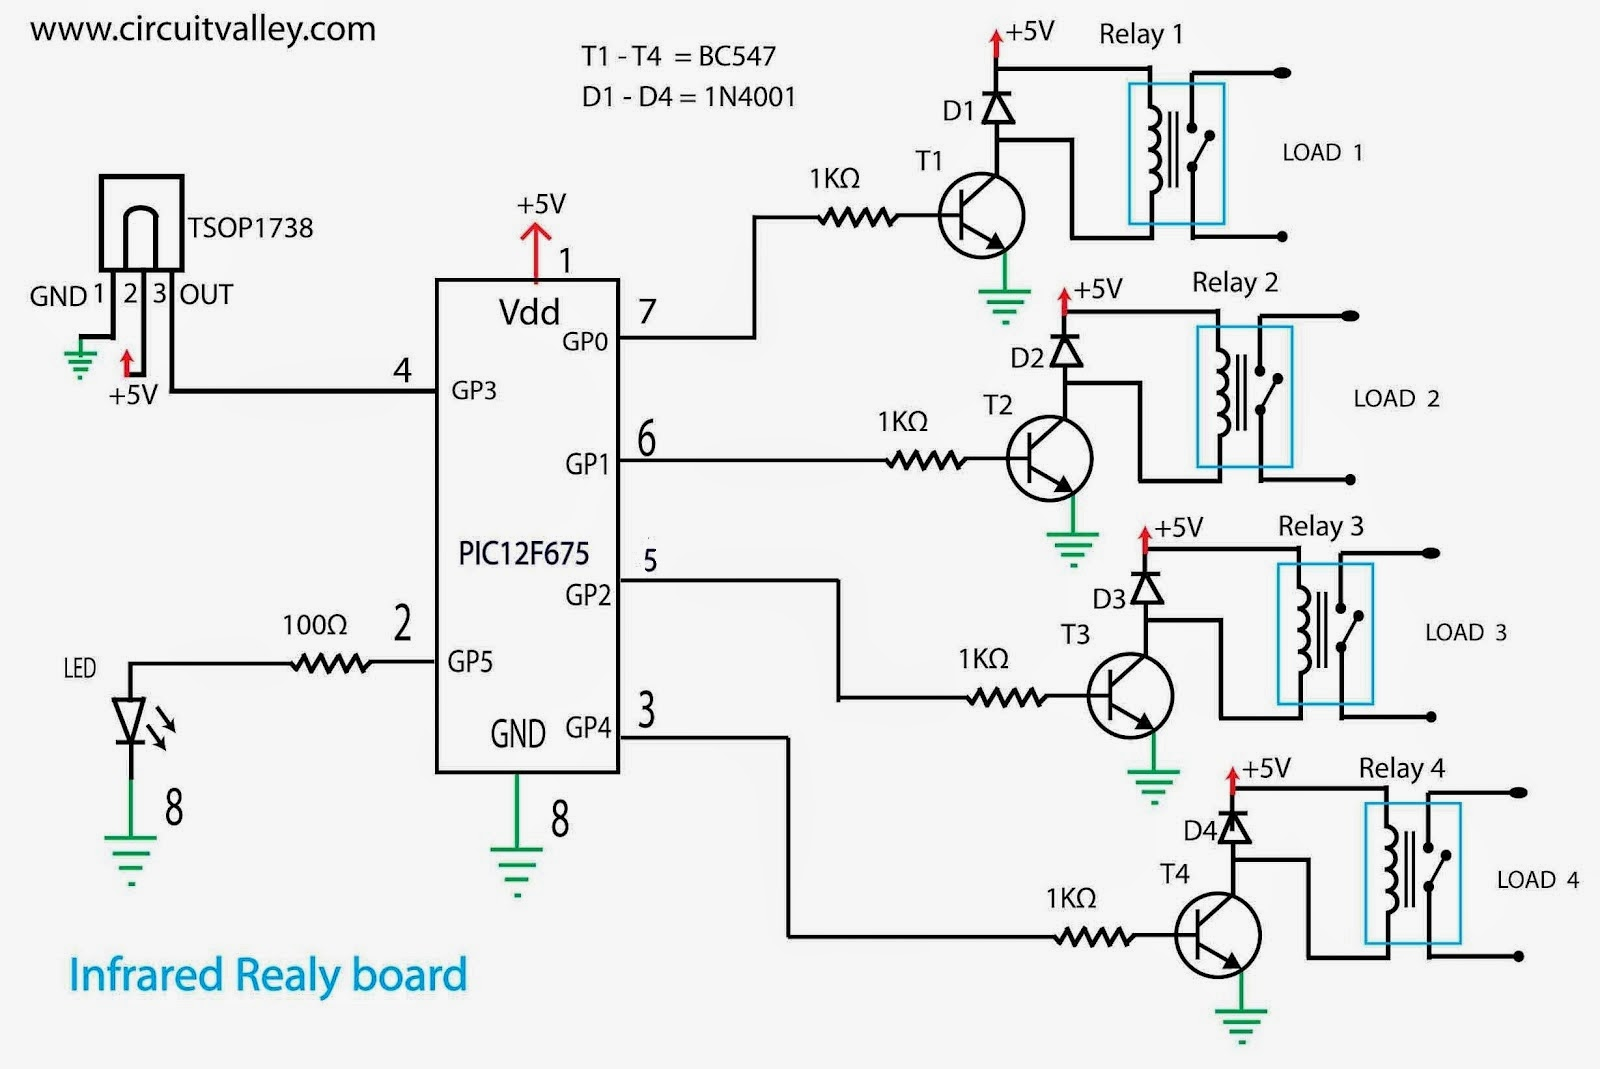 Battery Ignition System together with Reading Circuit Diagrams also 116061 Electrical House Wiring Made Easy Simple Tips Explored furthermore Regulated Charger besides Allen Bradley PLC Programming 1756 OB32 60129336880. on wiring diagram design